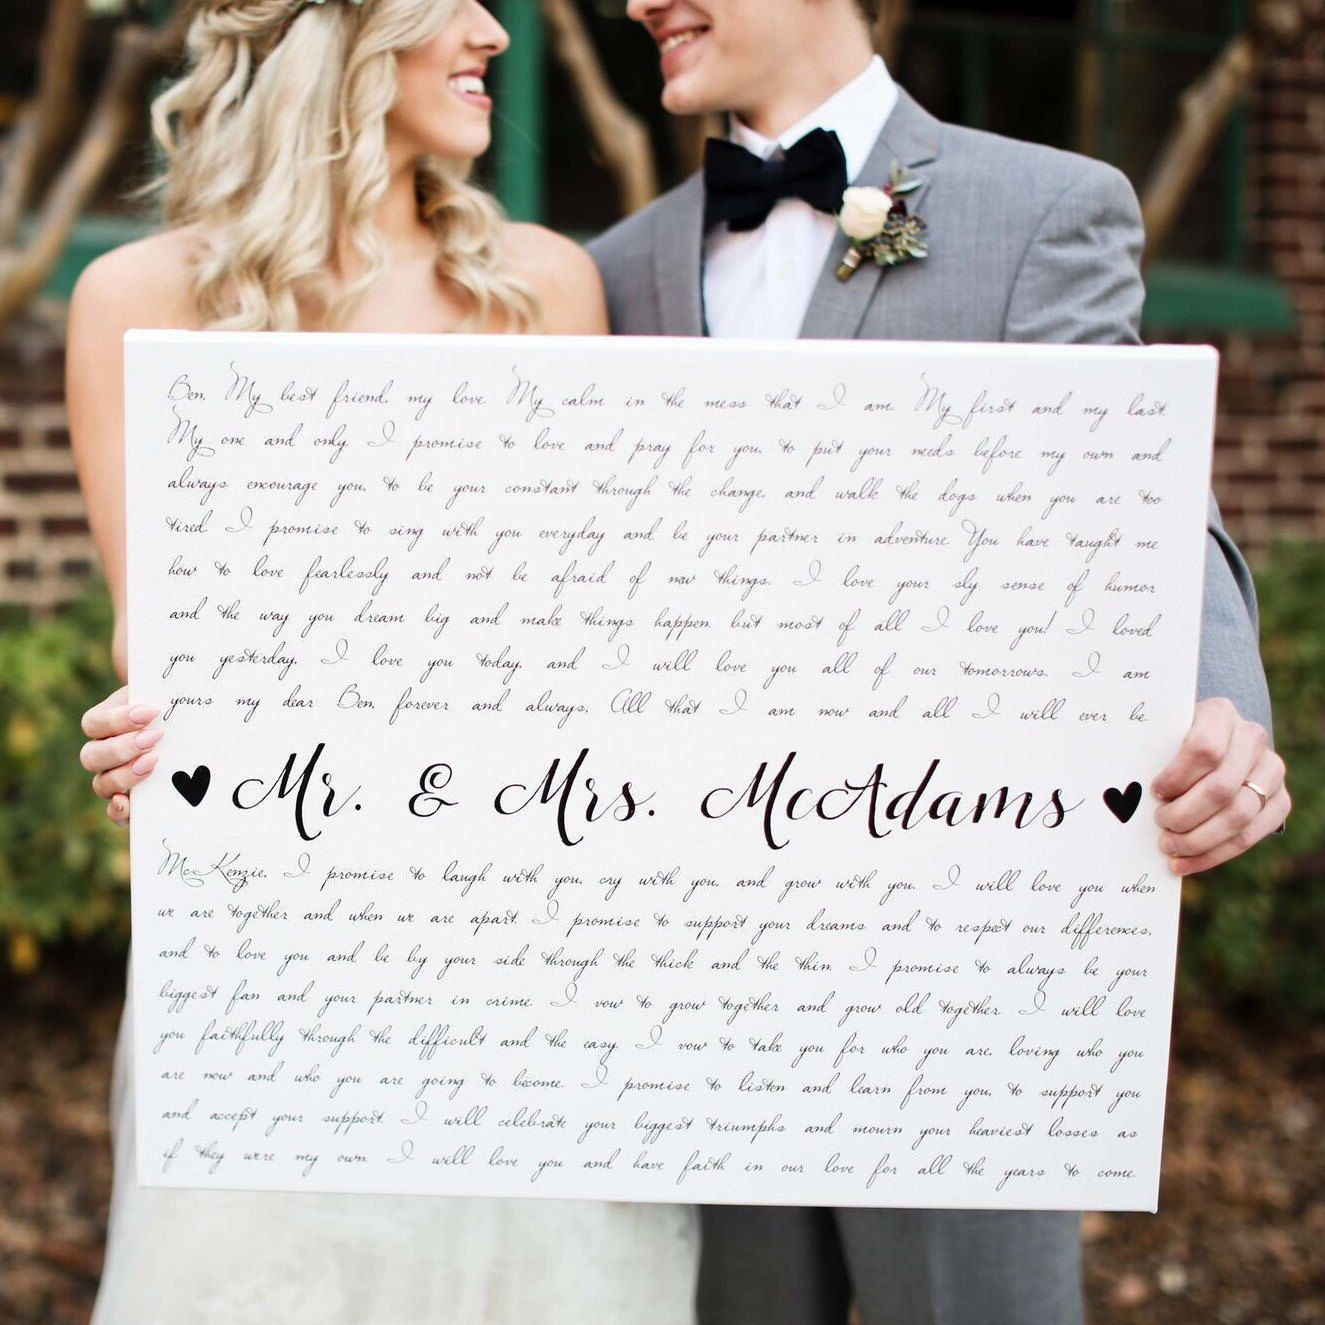 Unique Gifts For Husband On Wedding Day: Fully Personalized Wedding Vow Art!! Mr. & Mrs. McAdams